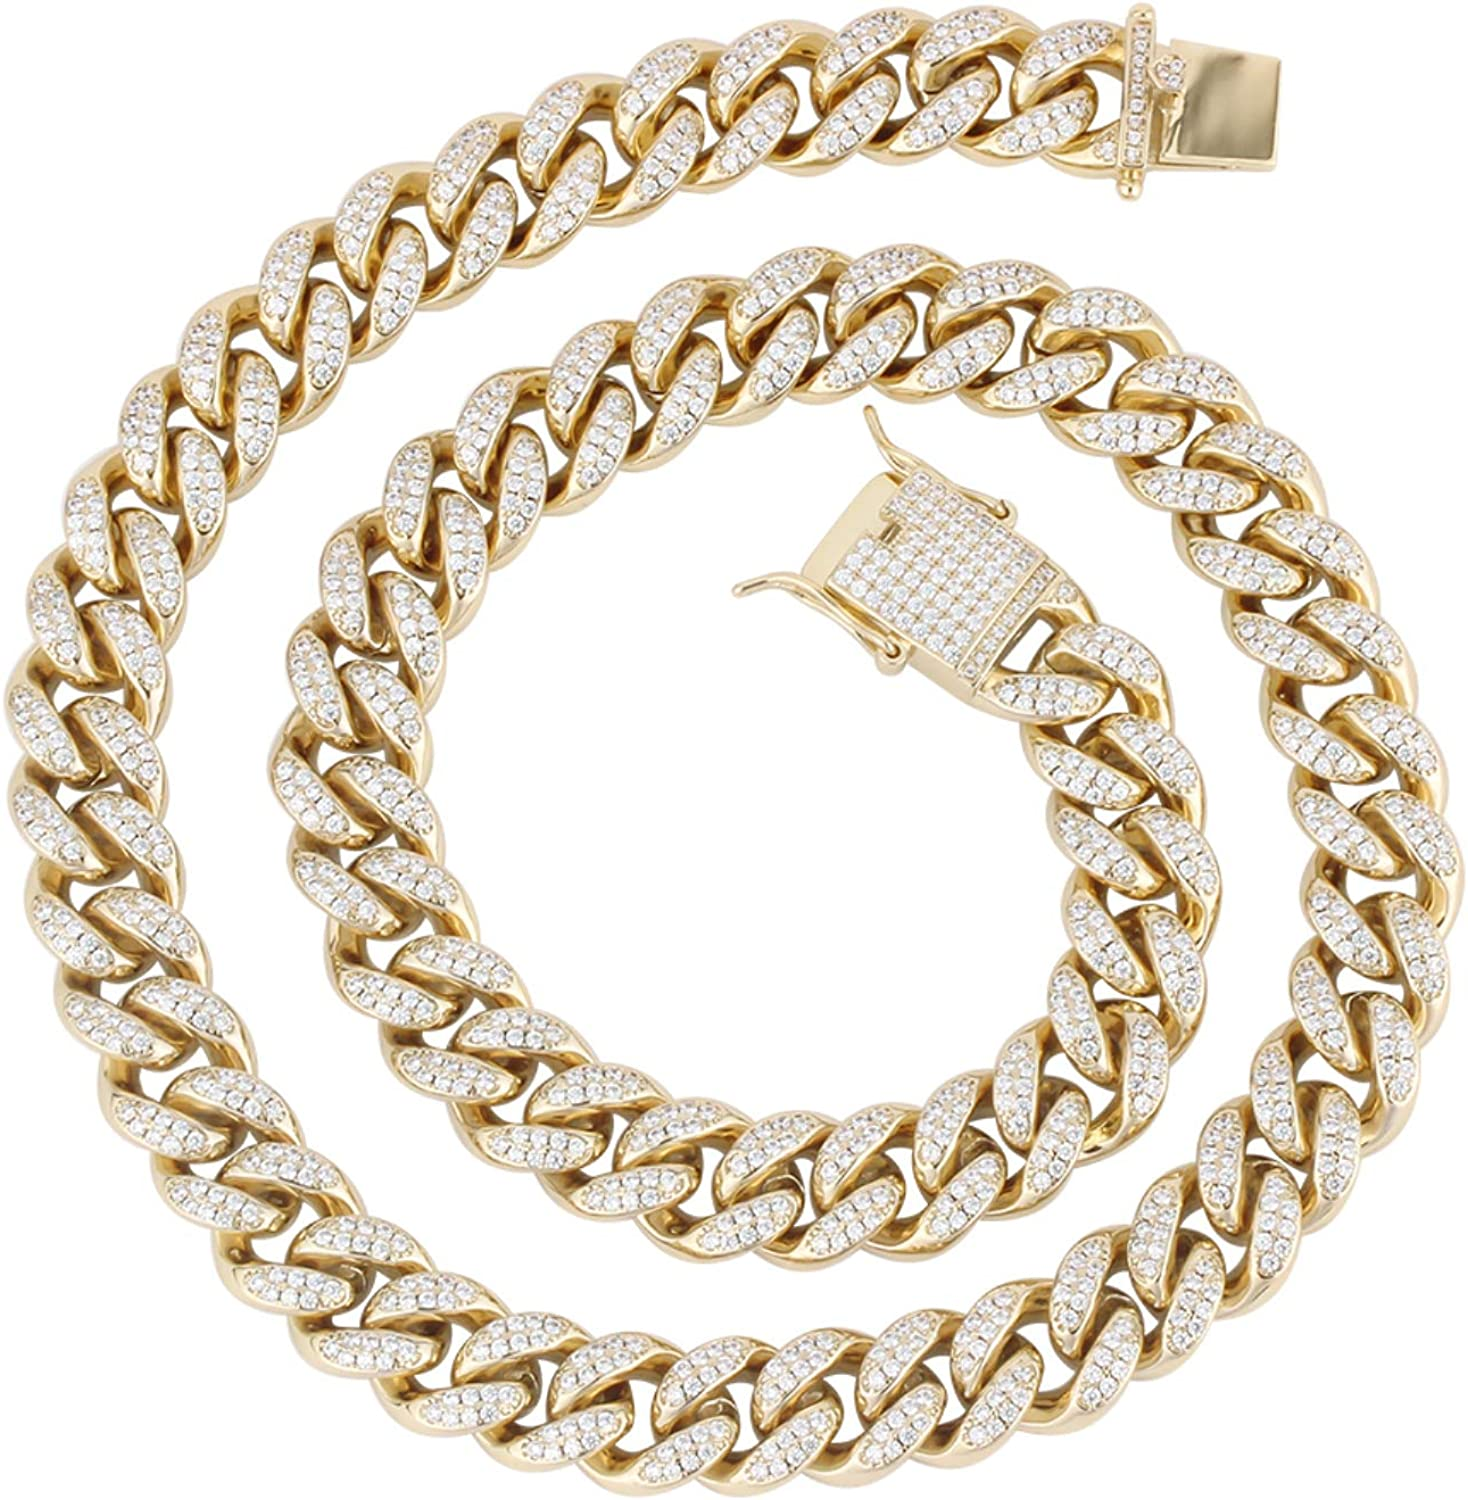 PY Bling Mens Genuine Free Shipping Iced Out Hip Hop Miami Chain 12mm Choke Link Denver Mall Cuban